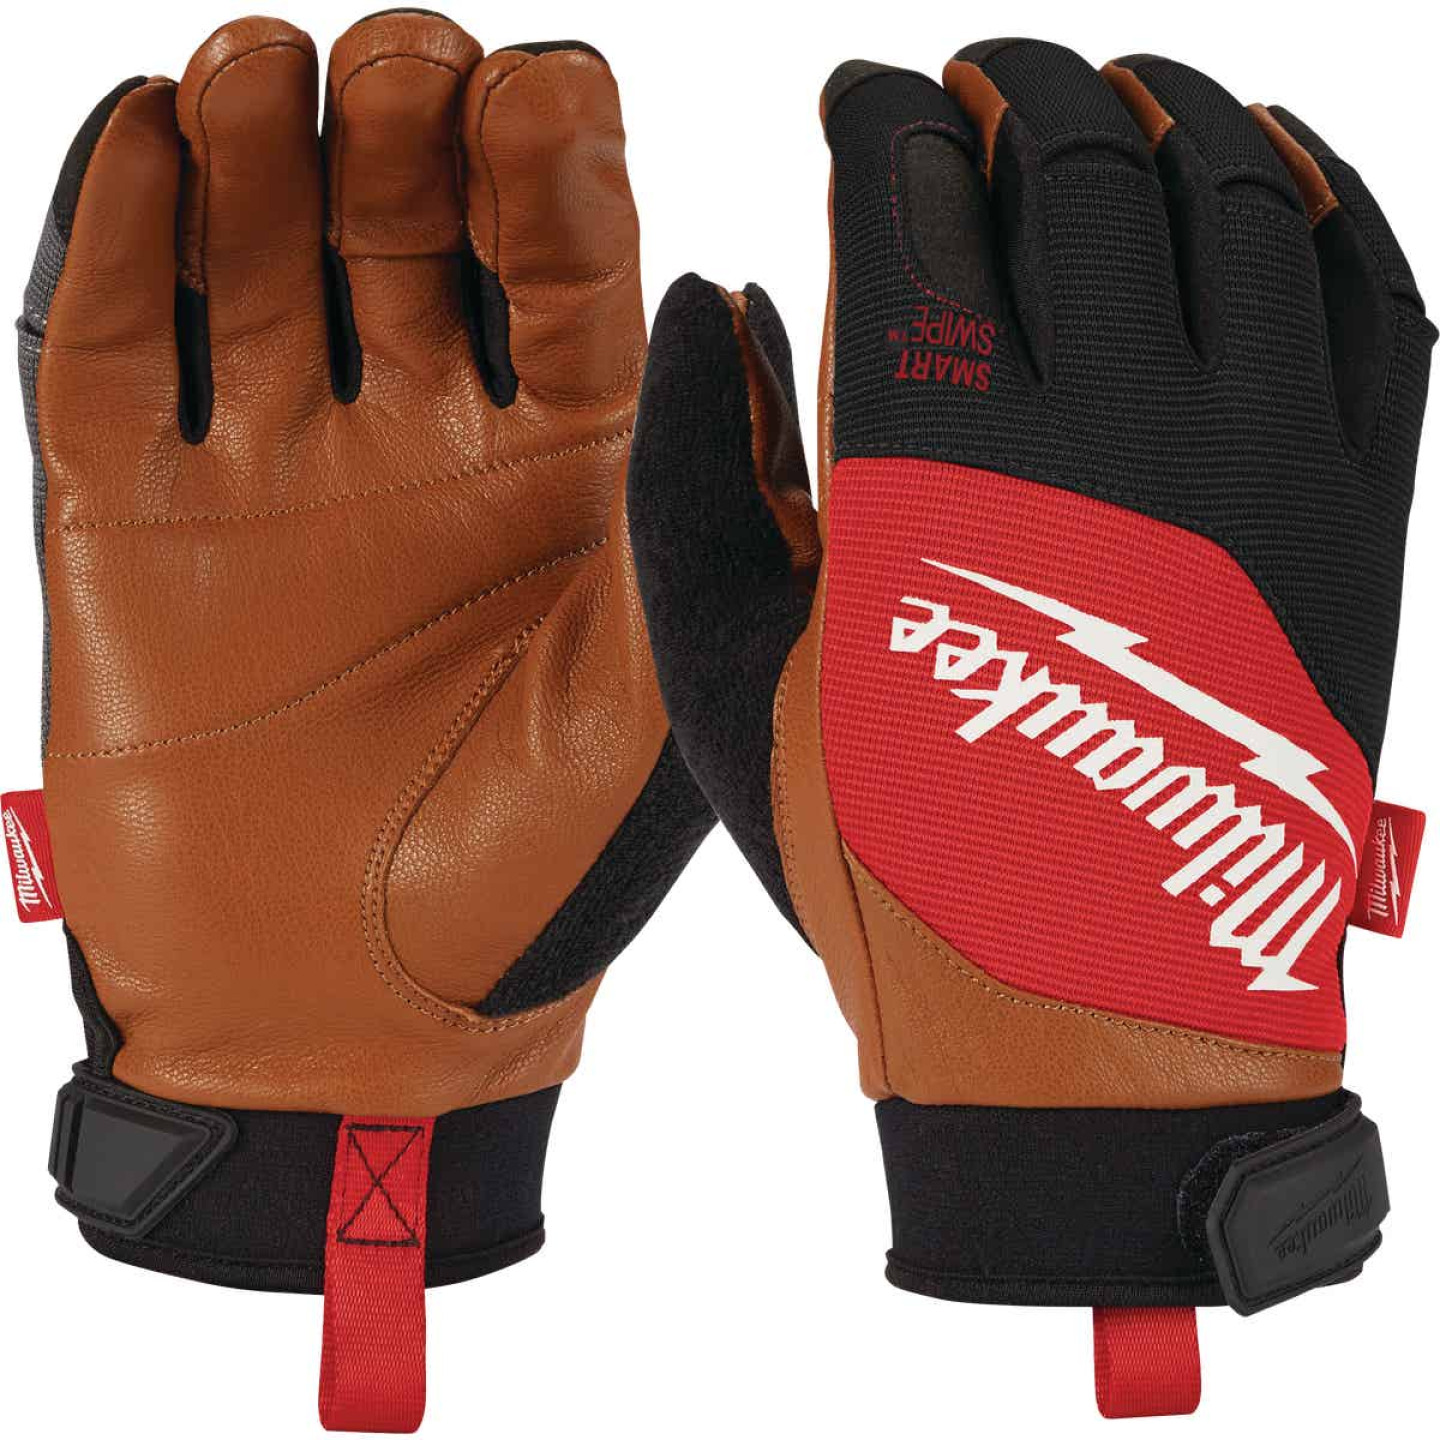 Milwaukee Men's XL Leather Performance Work Glove Image 1